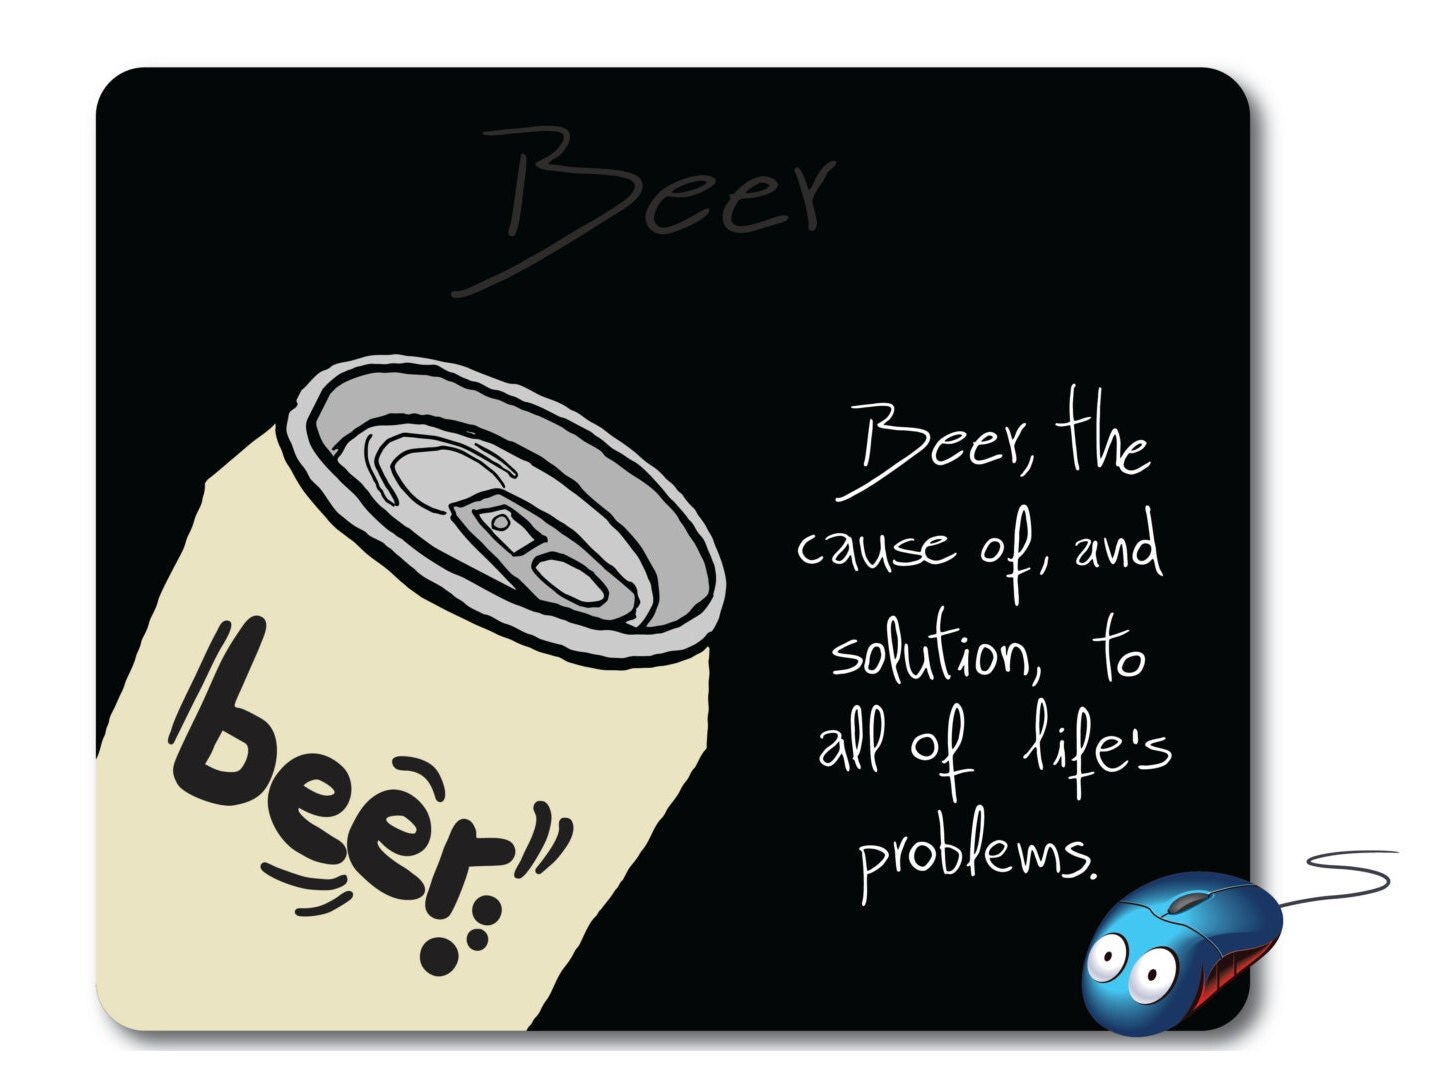 beer art computer mouse pad cool mouse pad best mousepad. Black Bedroom Furniture Sets. Home Design Ideas